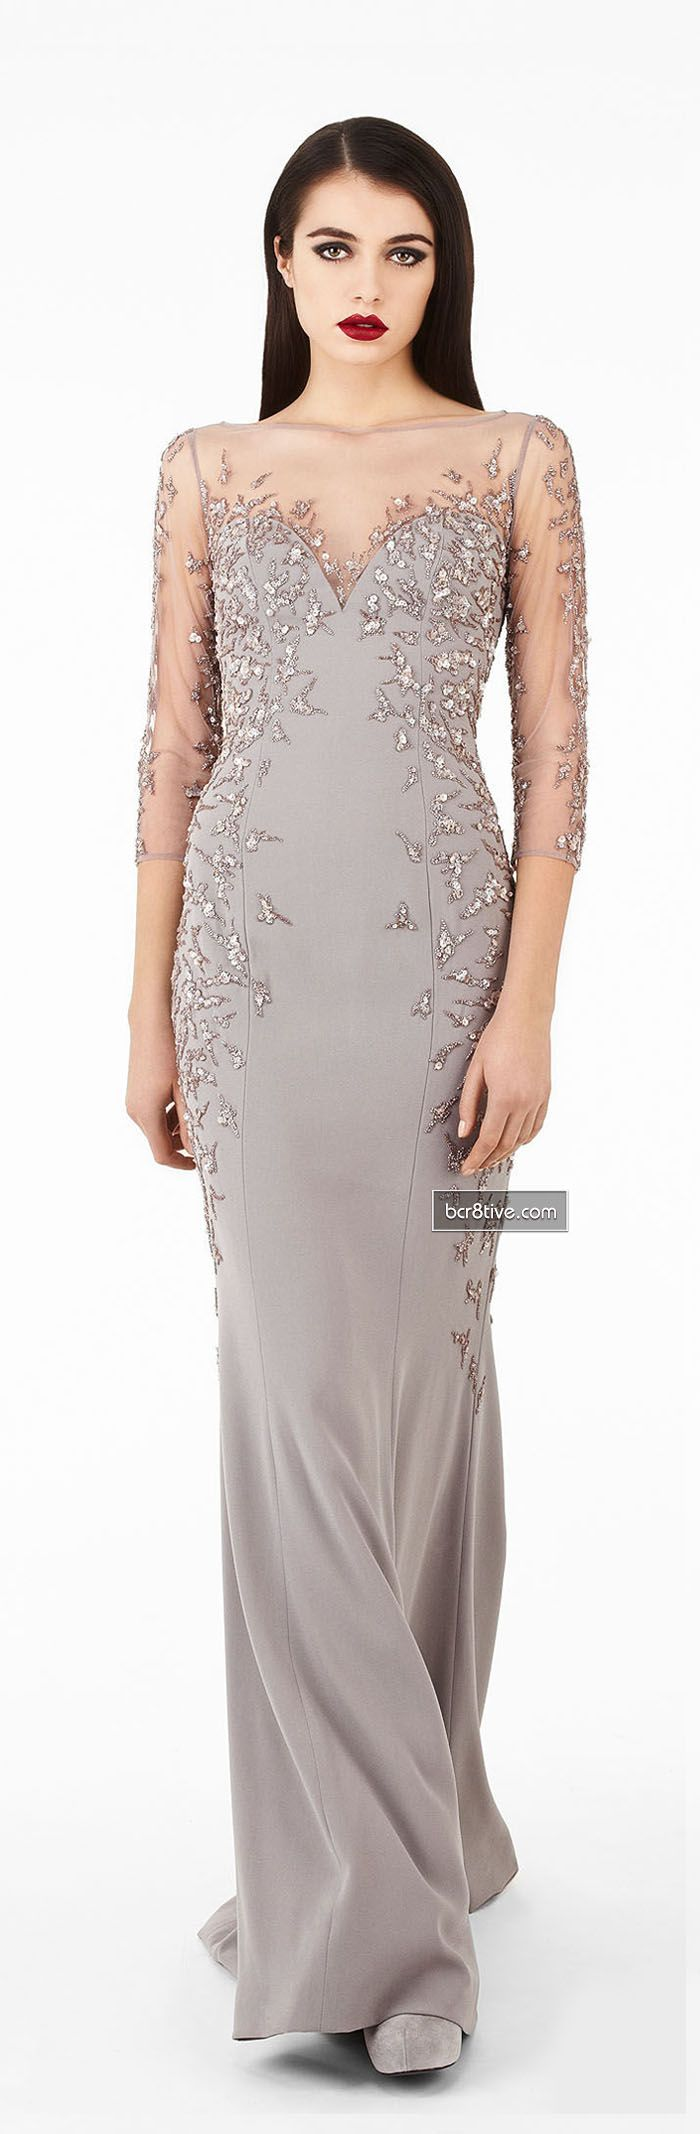 best images about grey and silver on pinterest h m dress